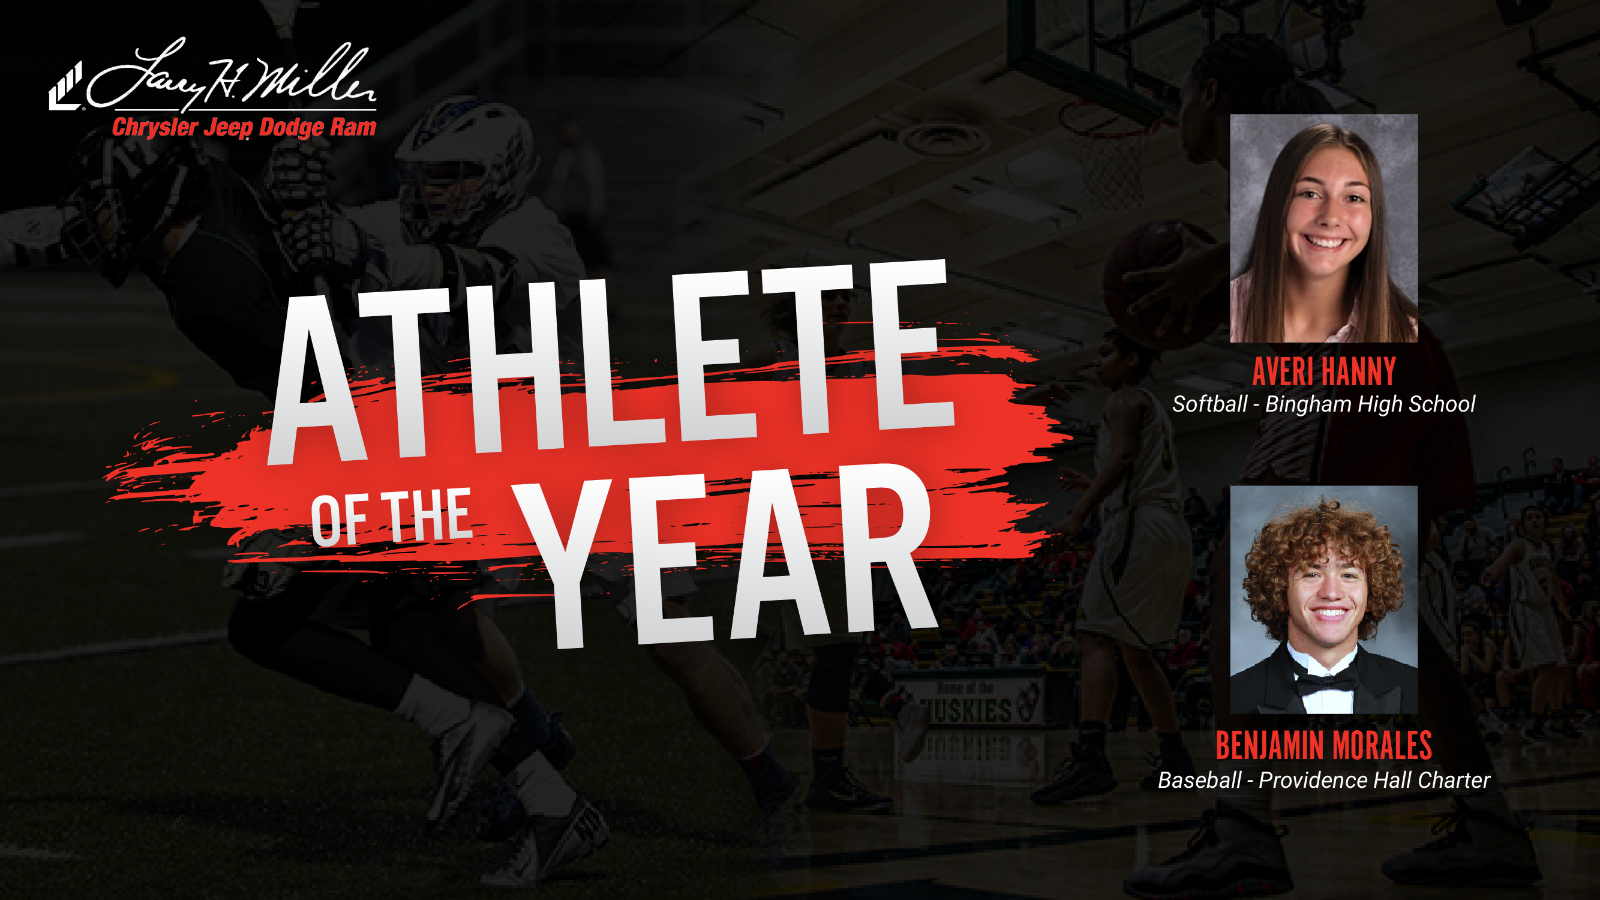 Congratulations to the Larry H. Miller Chrysler Jeep Dodge Ram Athletes of the Year